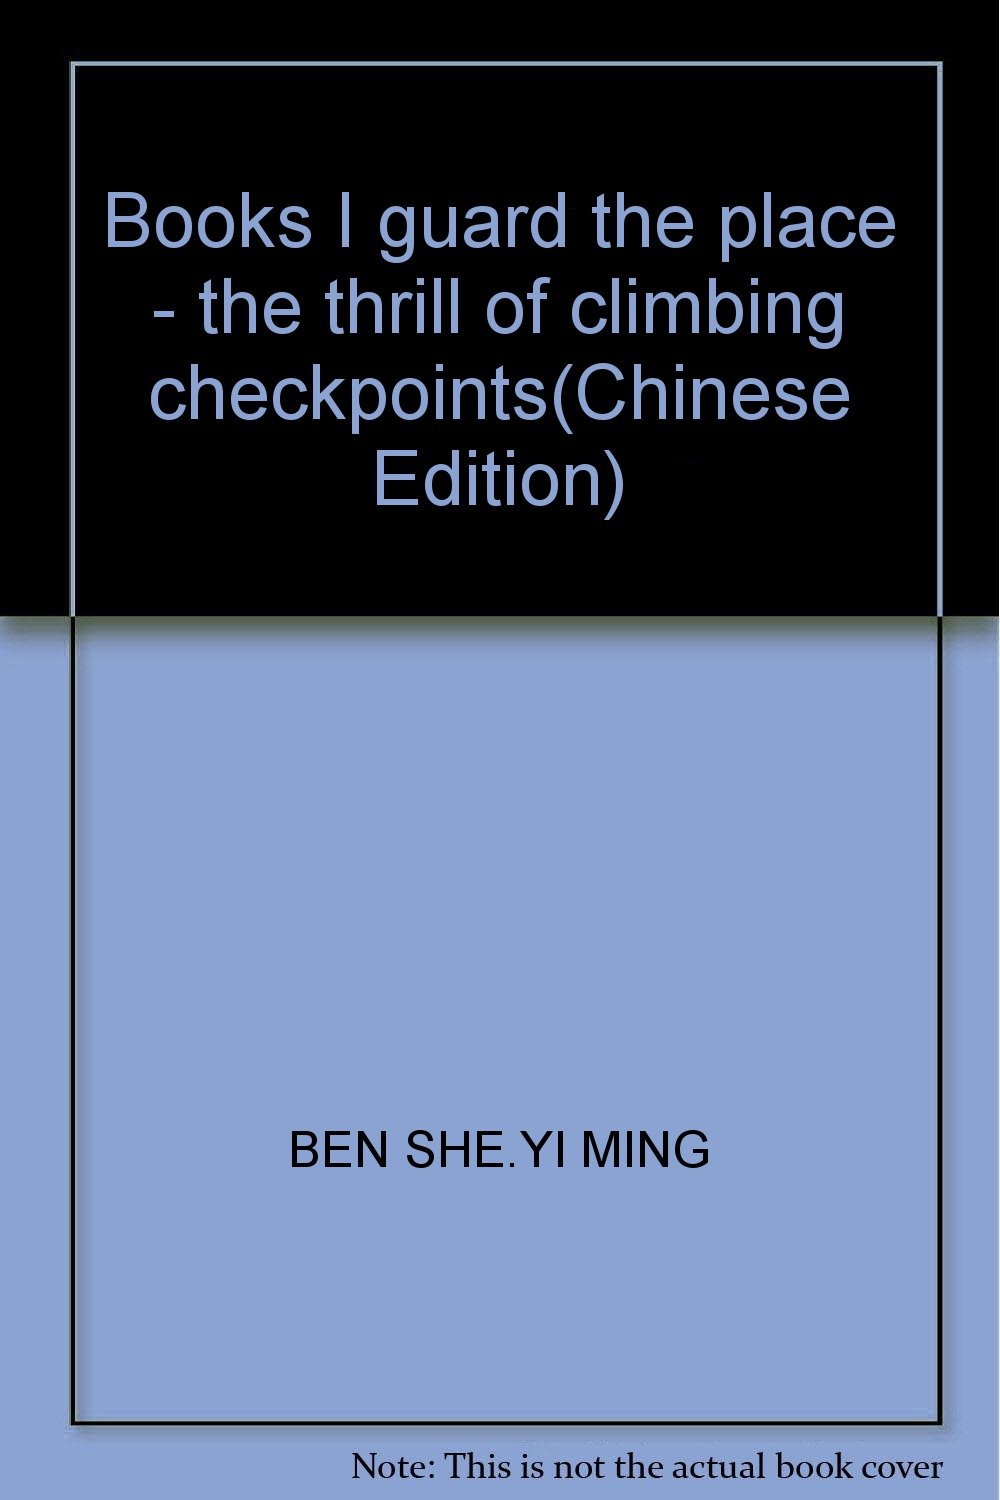 Download Books I guard the place - the thrill of climbing checkpoints(Chinese Edition) PDF